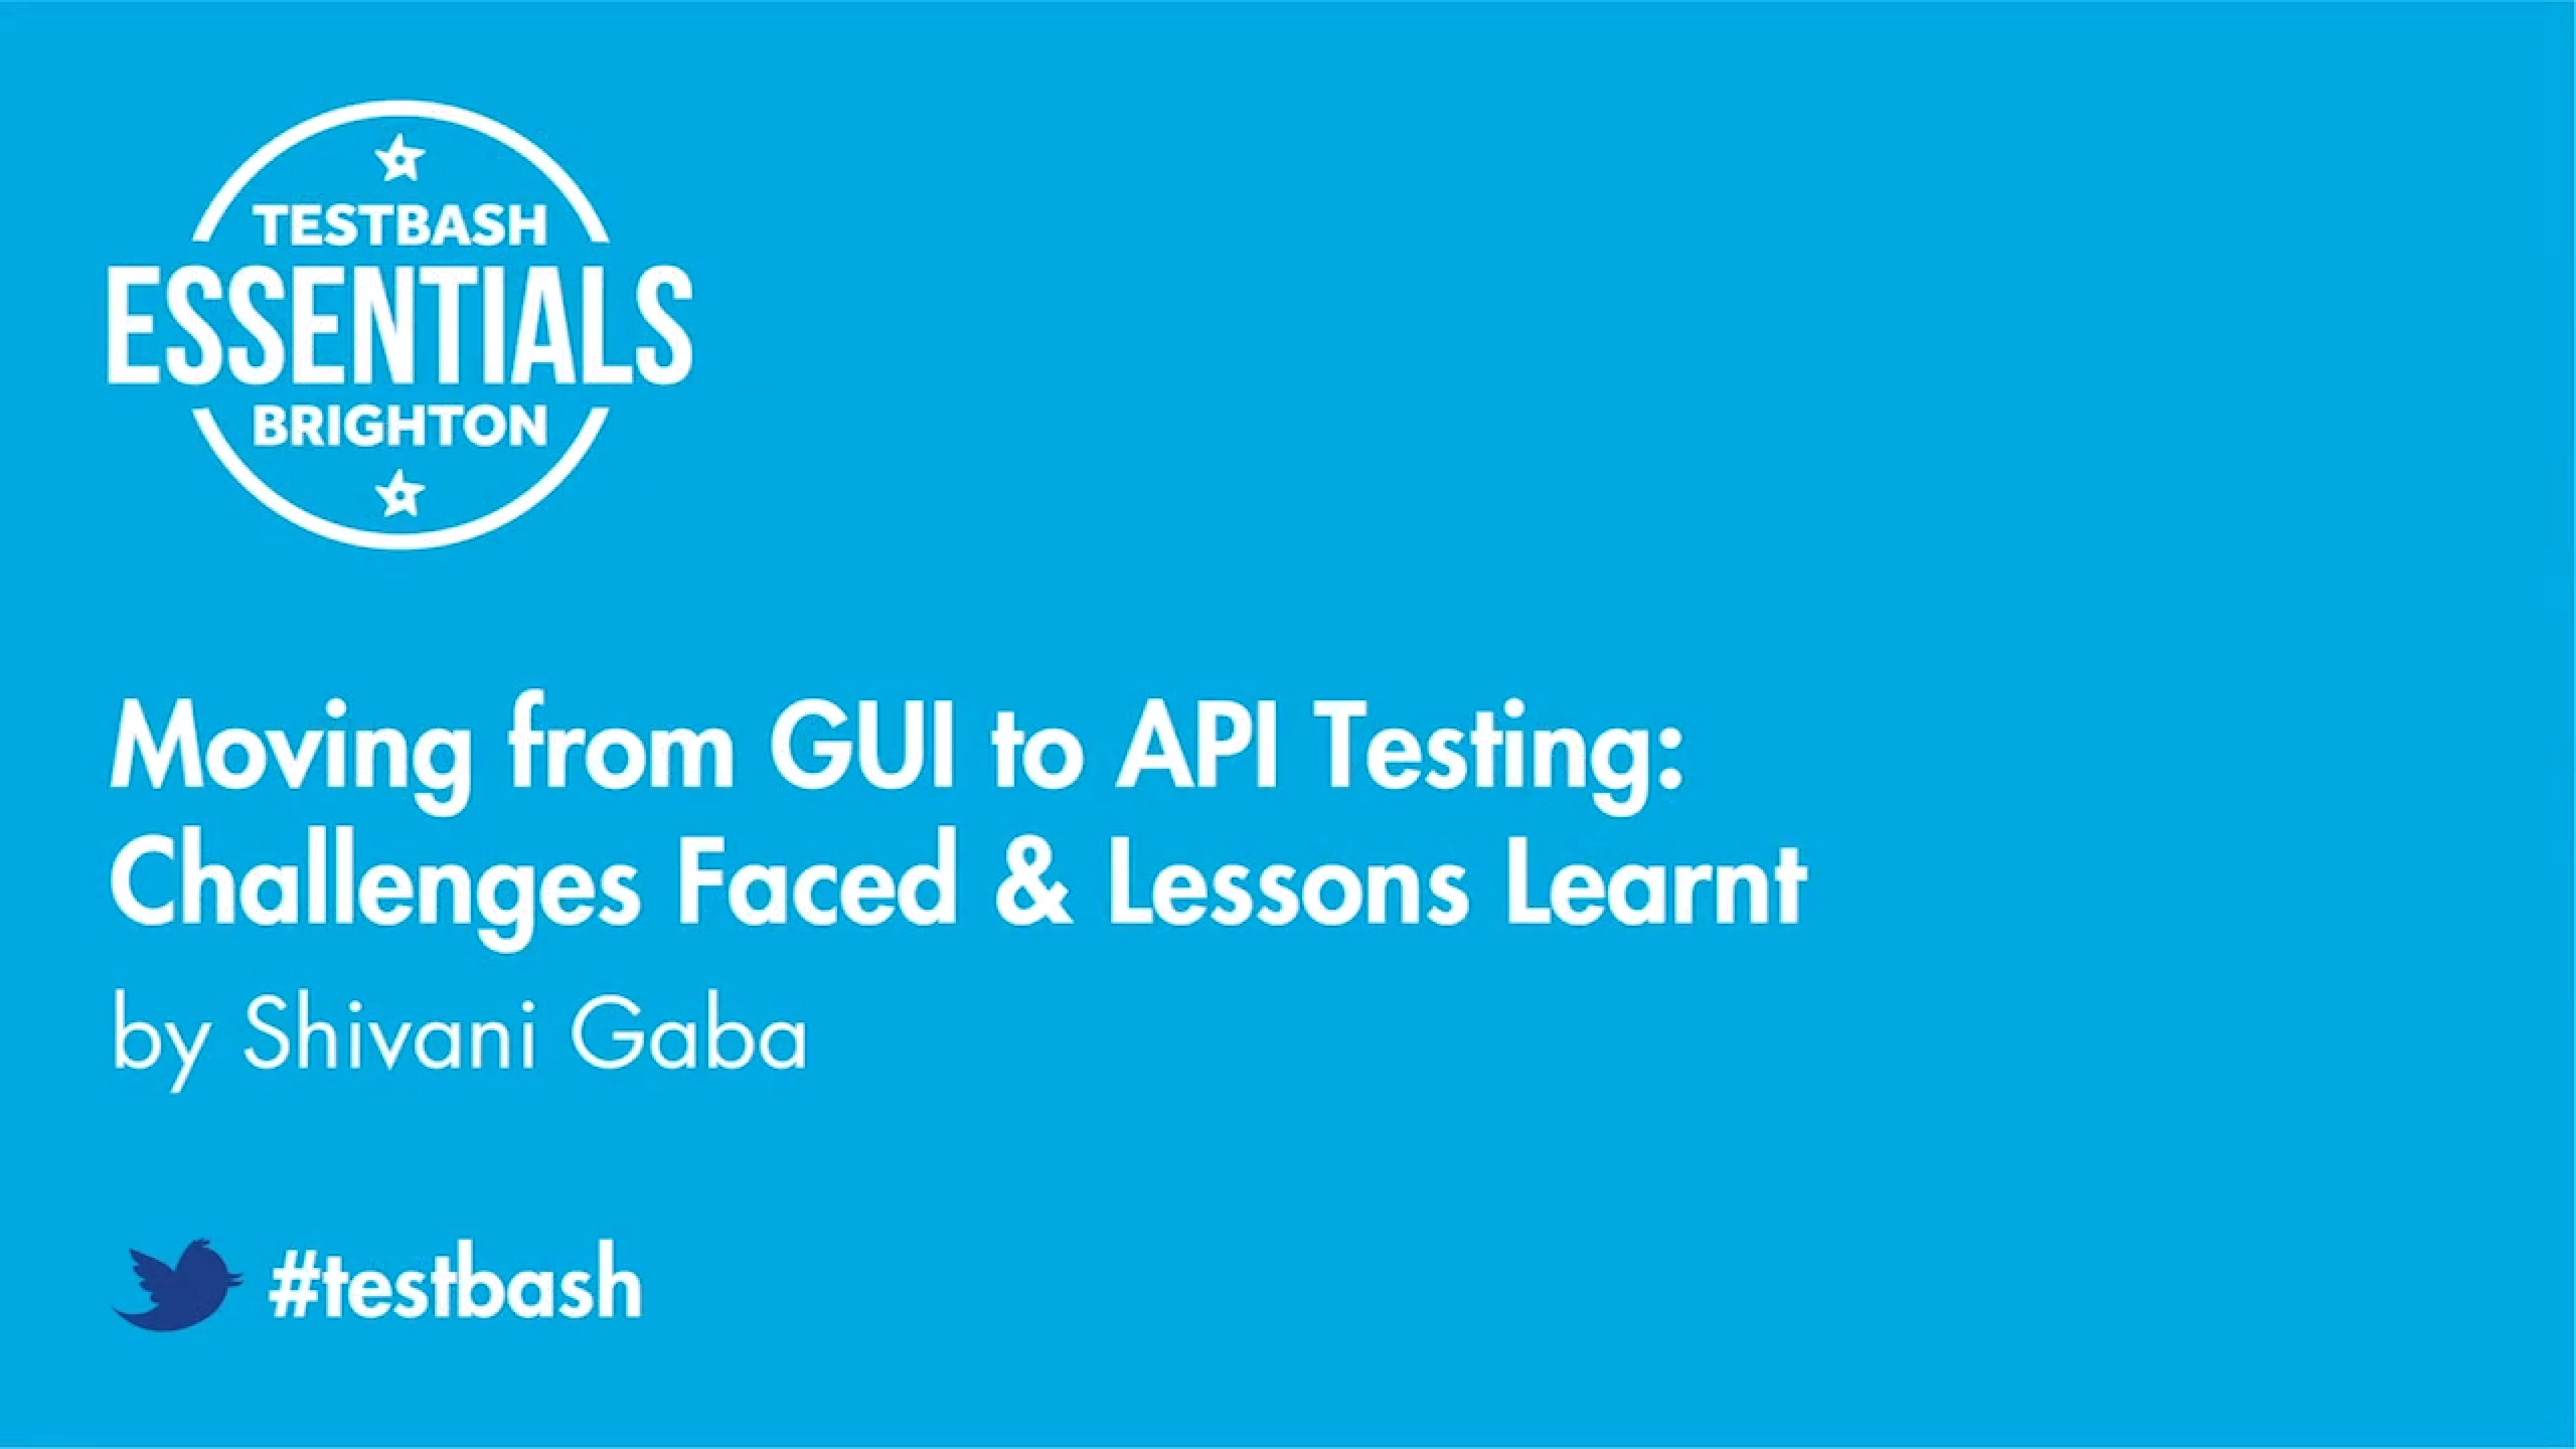 Moving from Gui to Api Testing: Challenges Faced & Lessons Learnt - Shivani Gaba